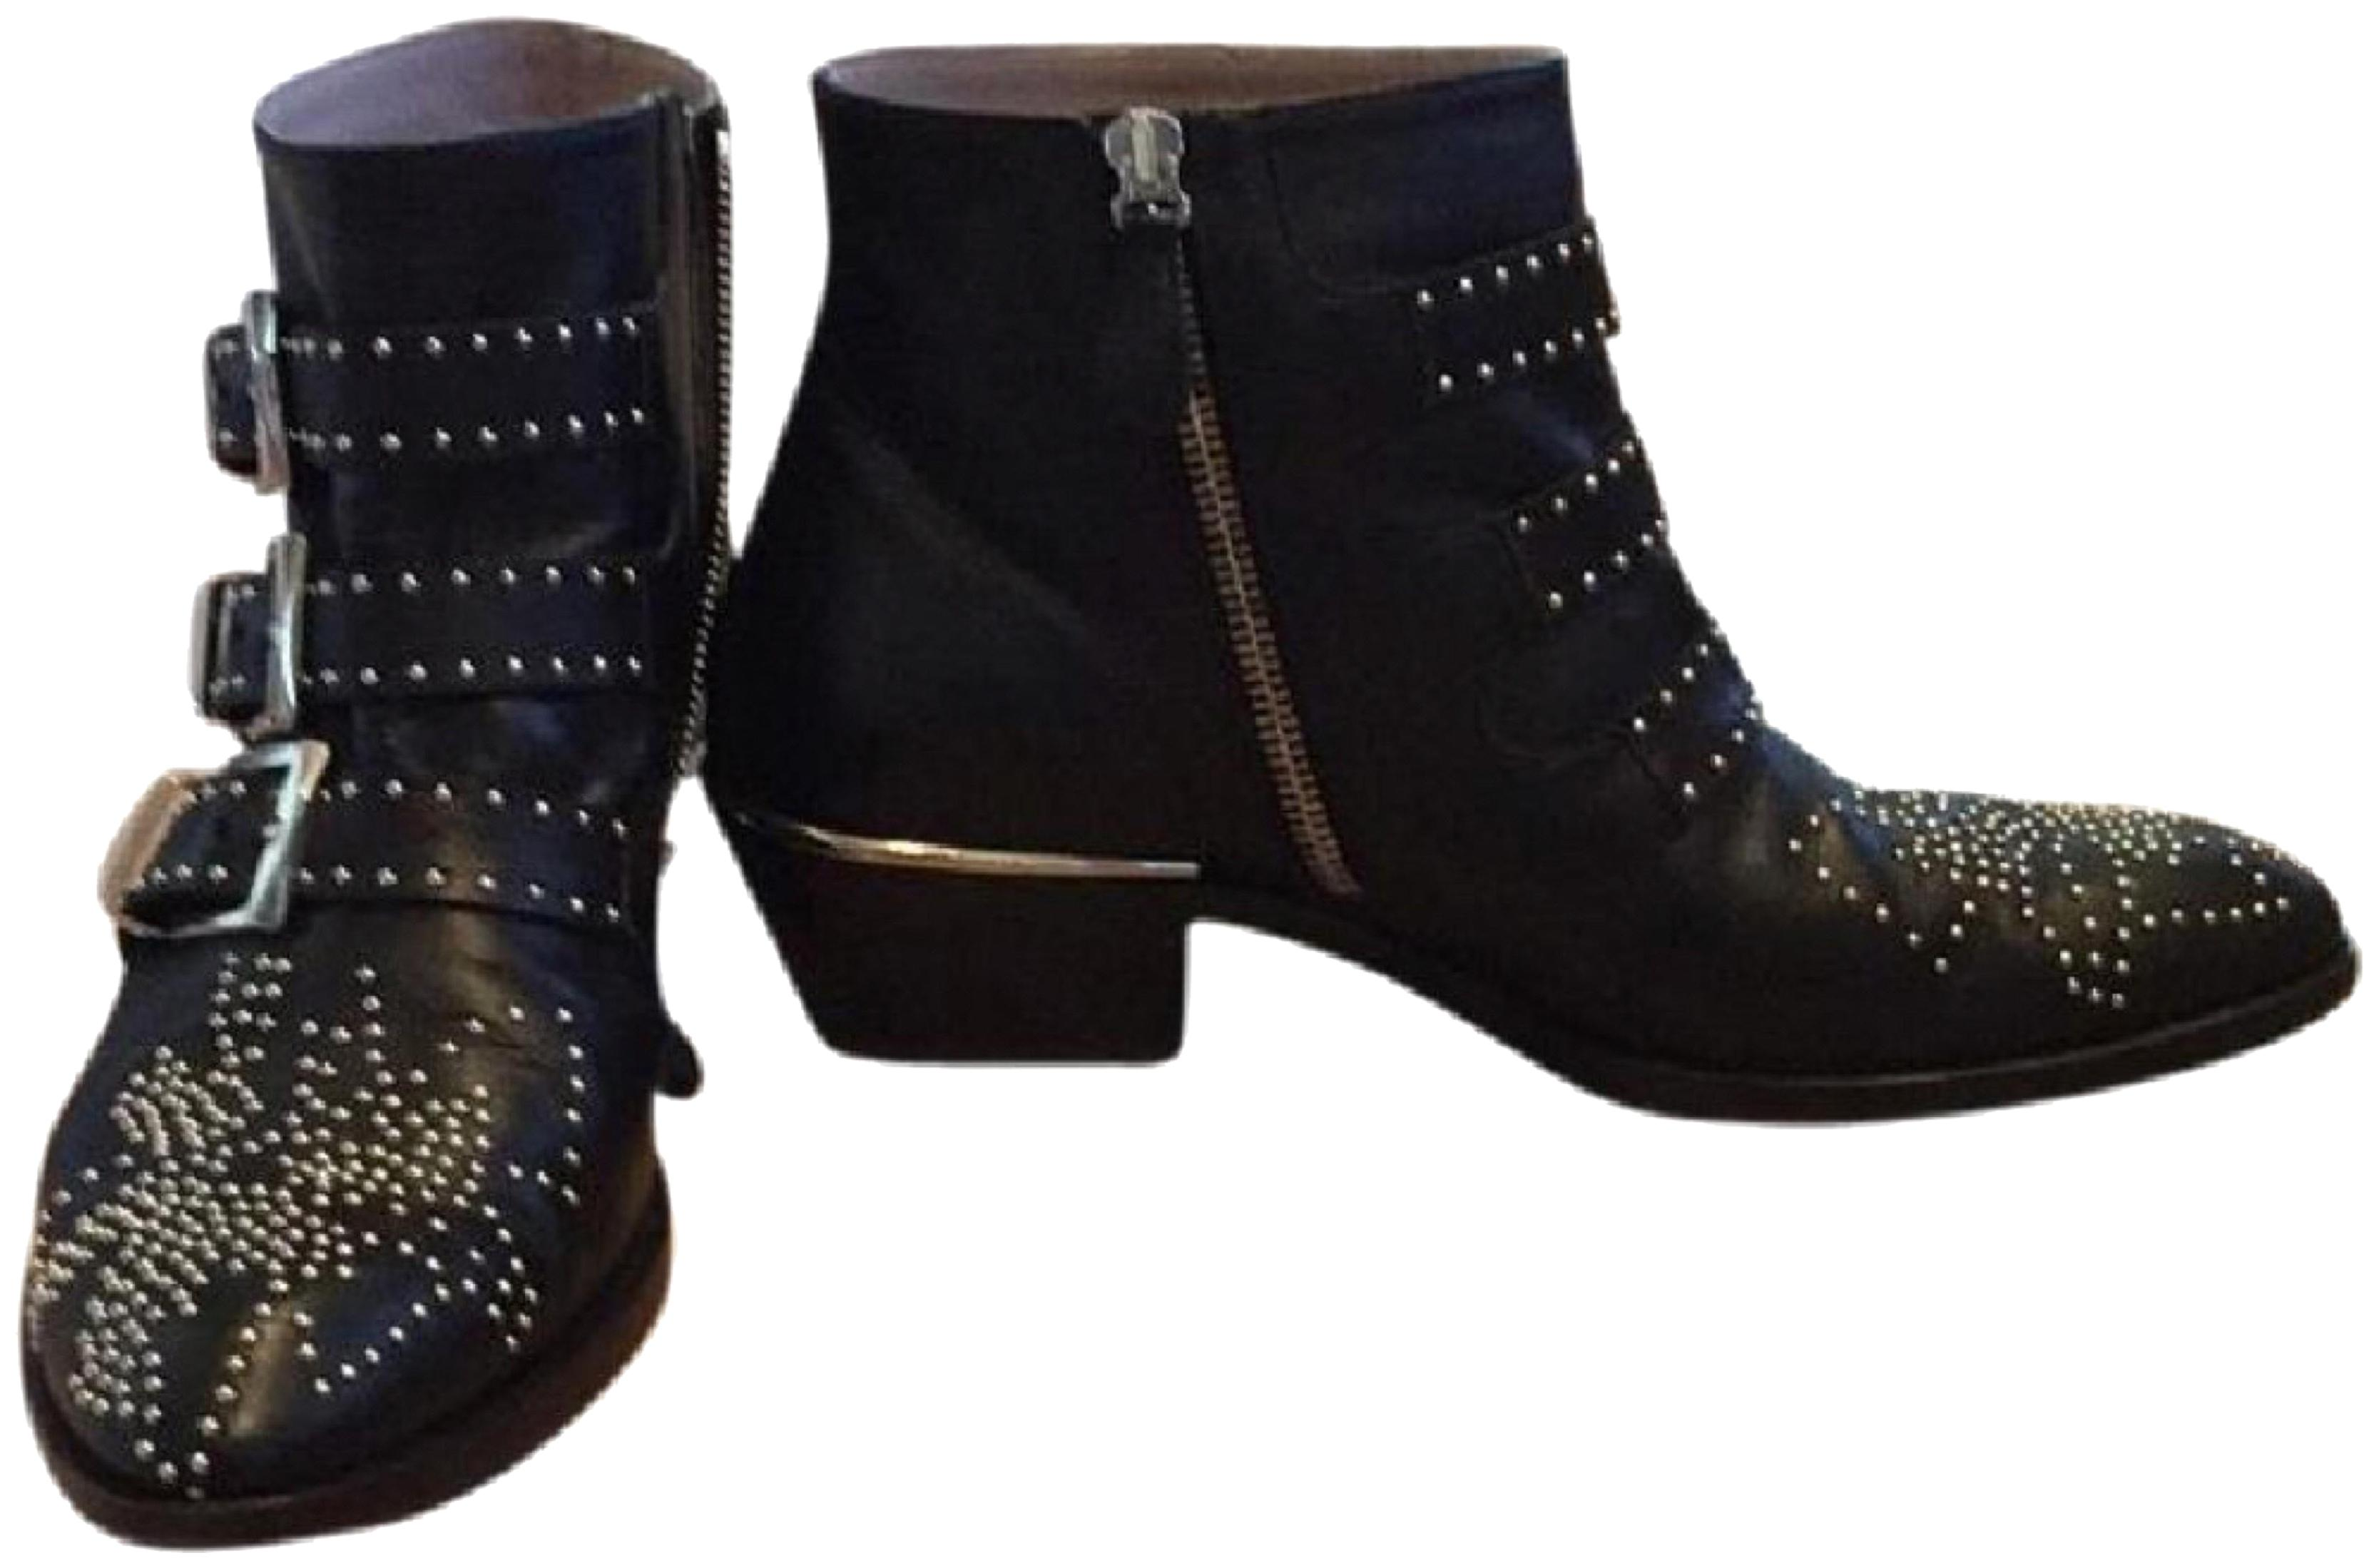 Chloé Black with Silver Studs Susanna Boots/Booties Size US 6 Regular (M, B)